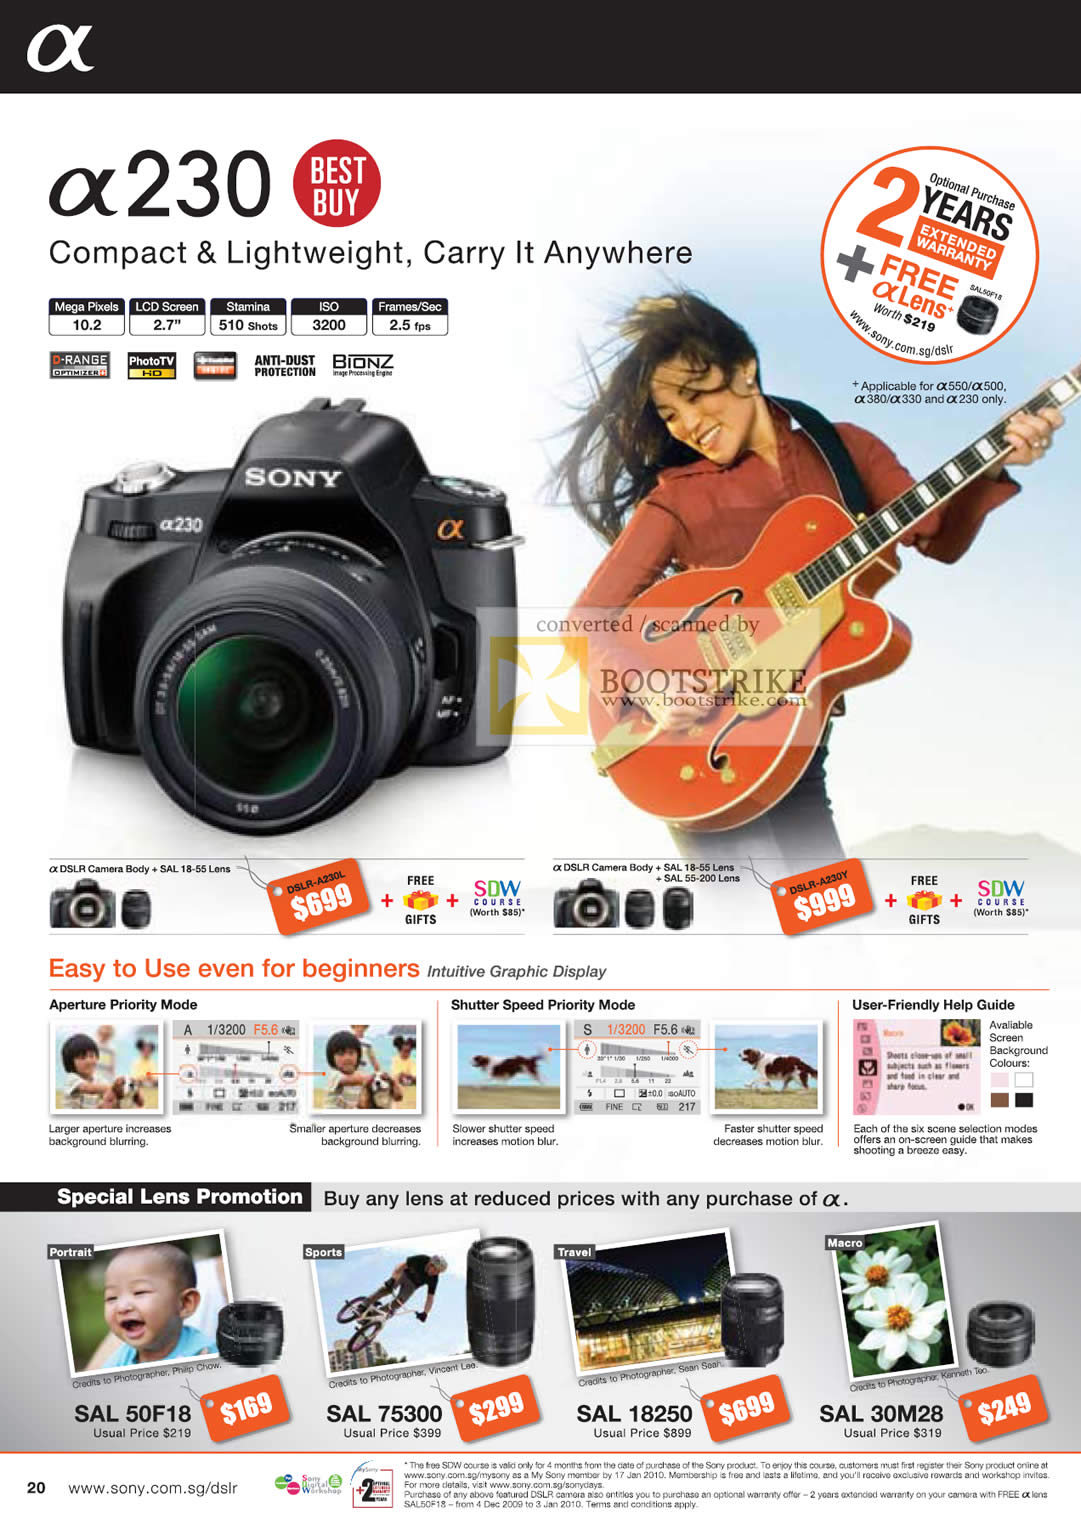 Camera List Of Sony Dslr Camera With Price sony alpha dslr digital cameras a230 c3 2009 price list brochure image of a230